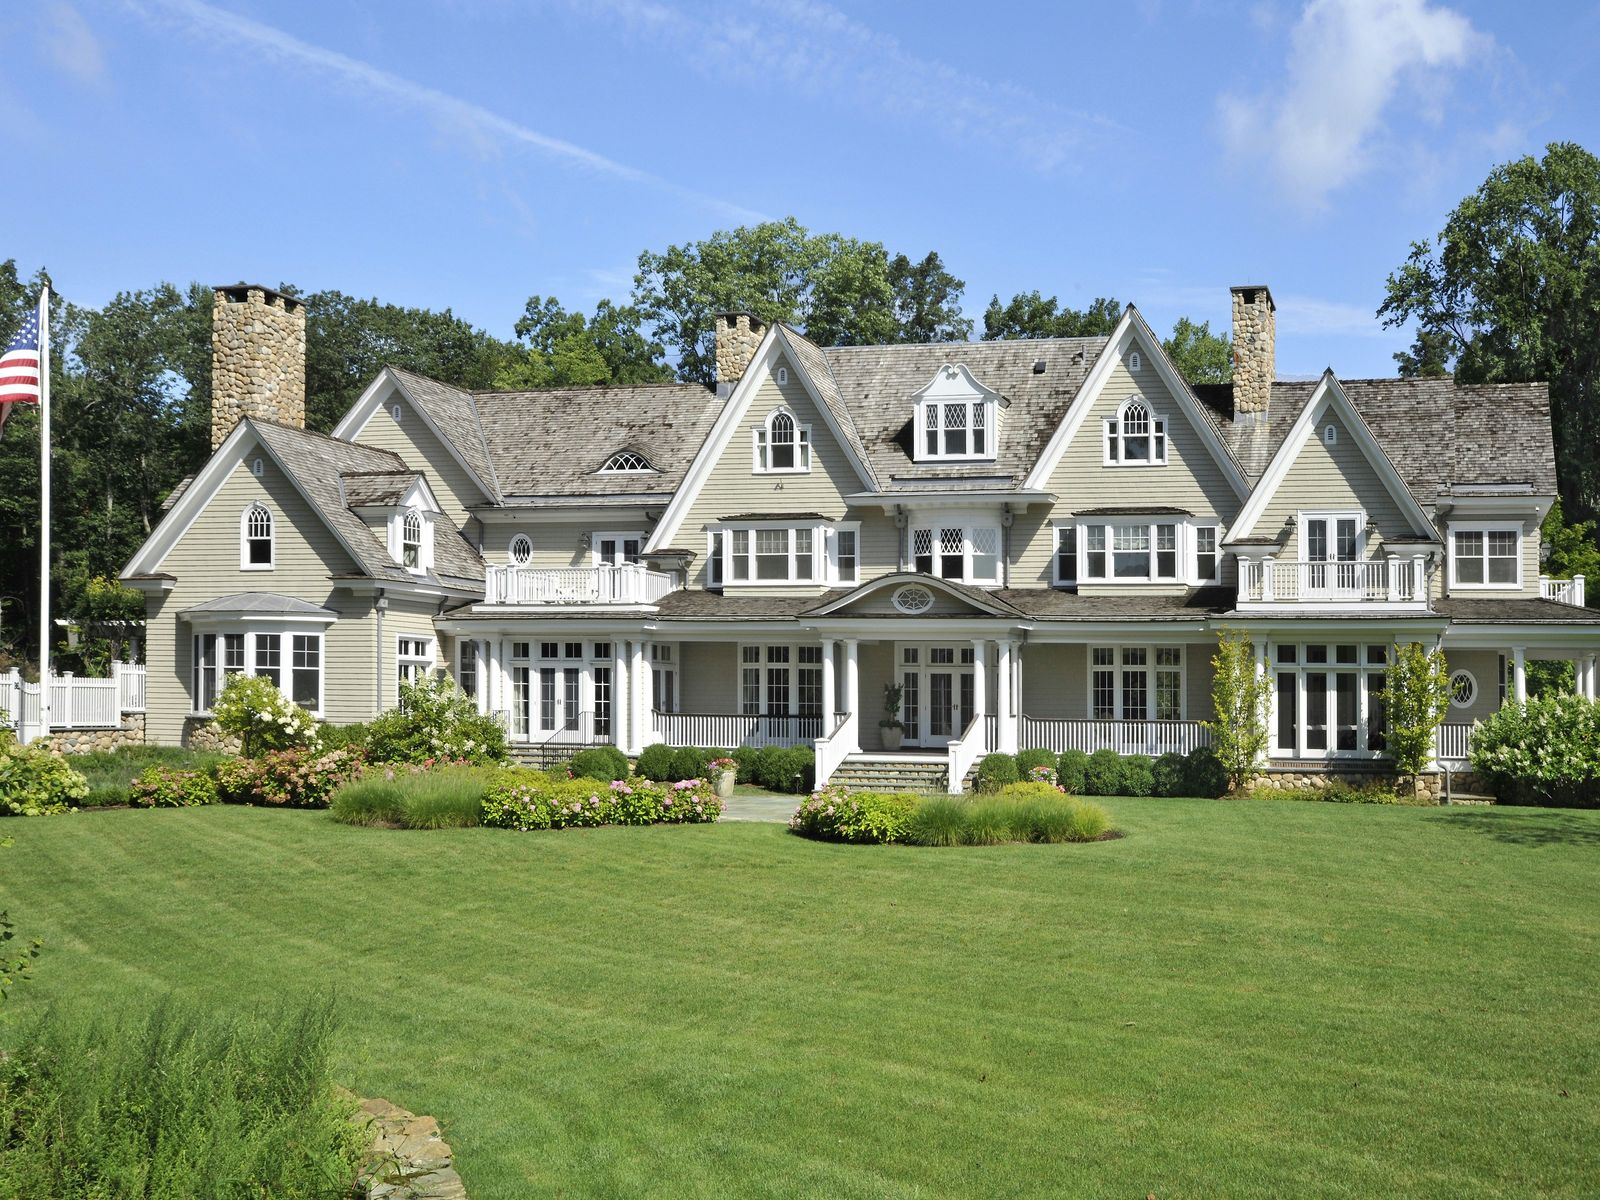 Round Hill Country Elegance, Greenwich CT Single Family Home - Greenwich Real Estate